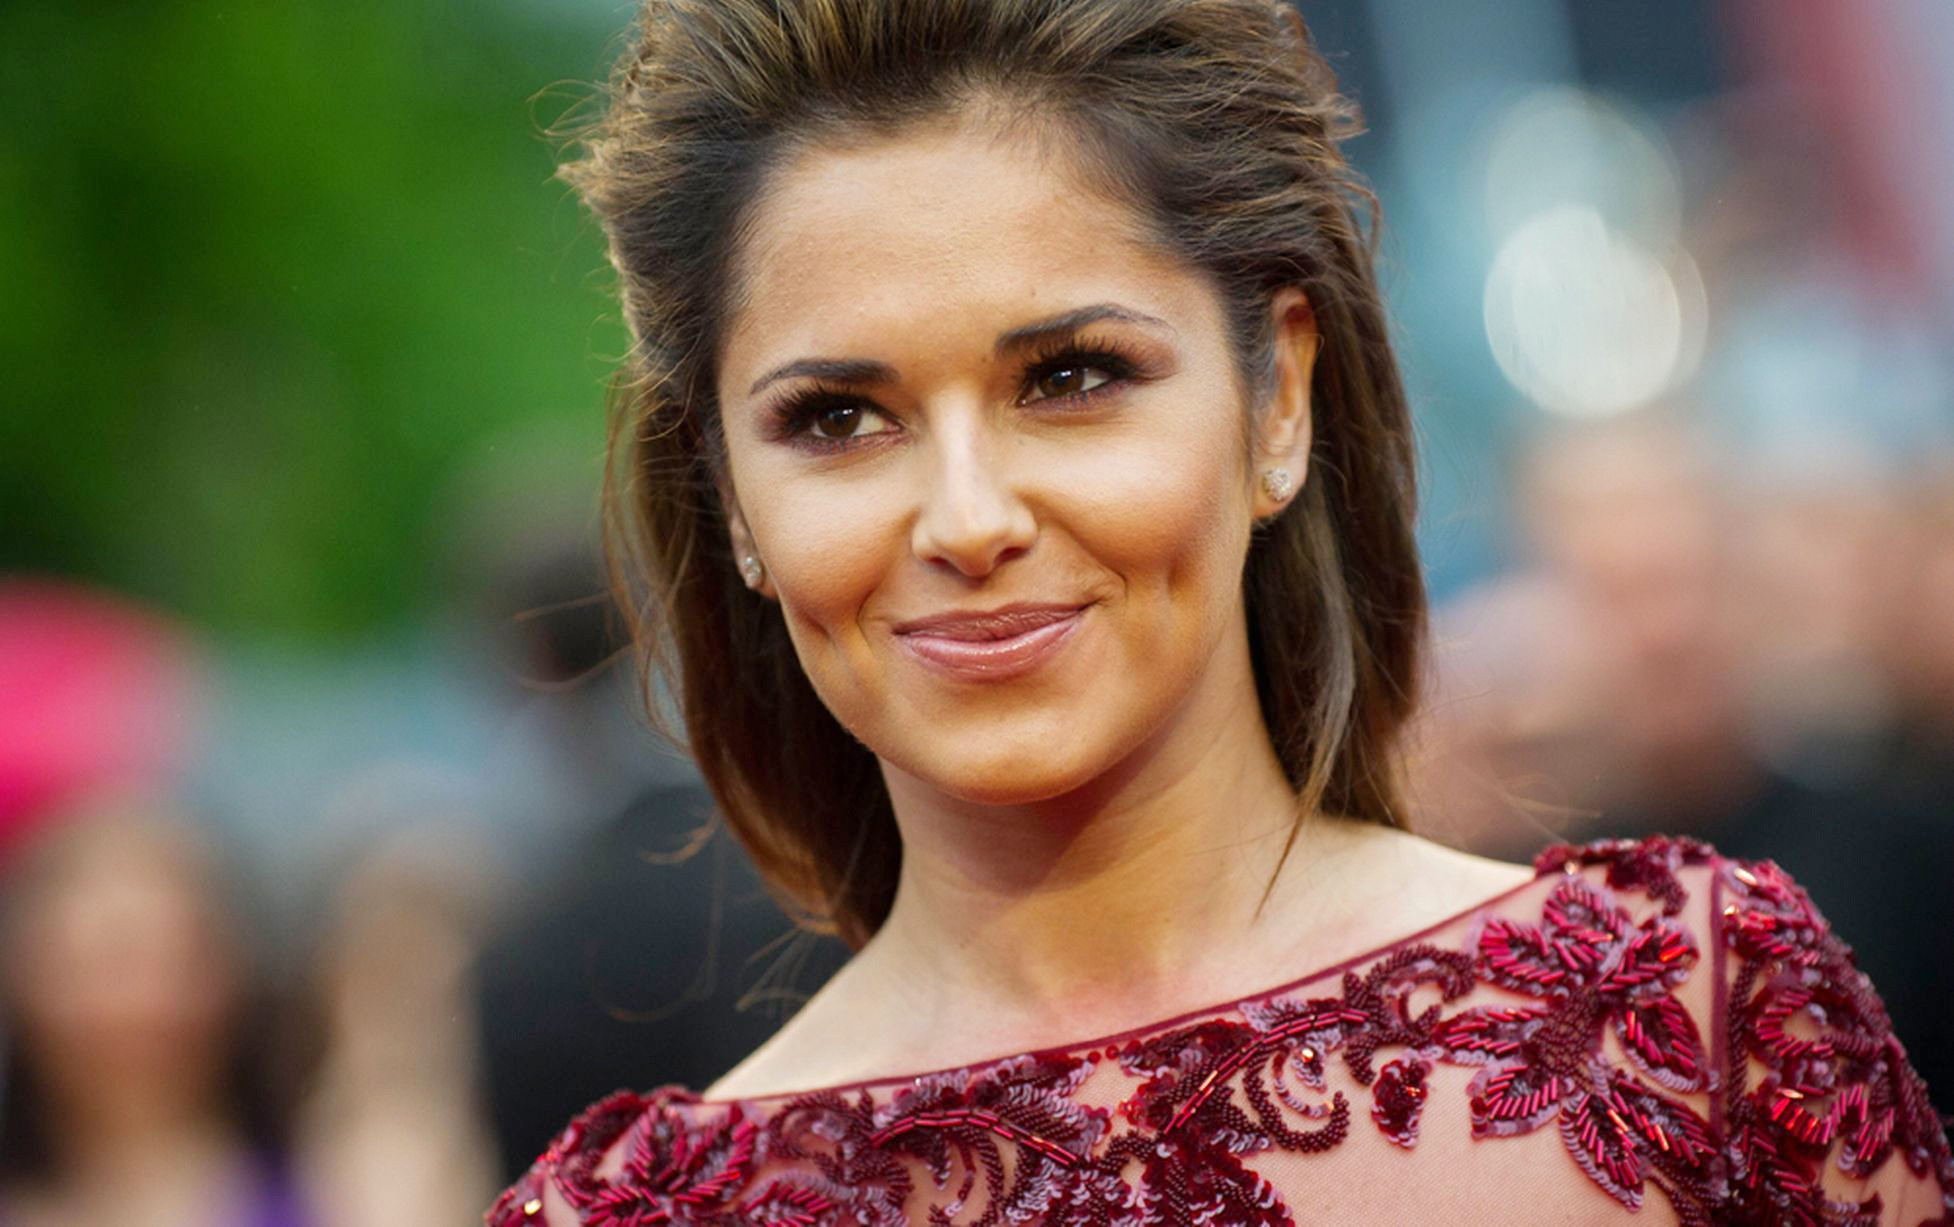 Free Fantastic Cheryl Cole Hd Wallpapers Download